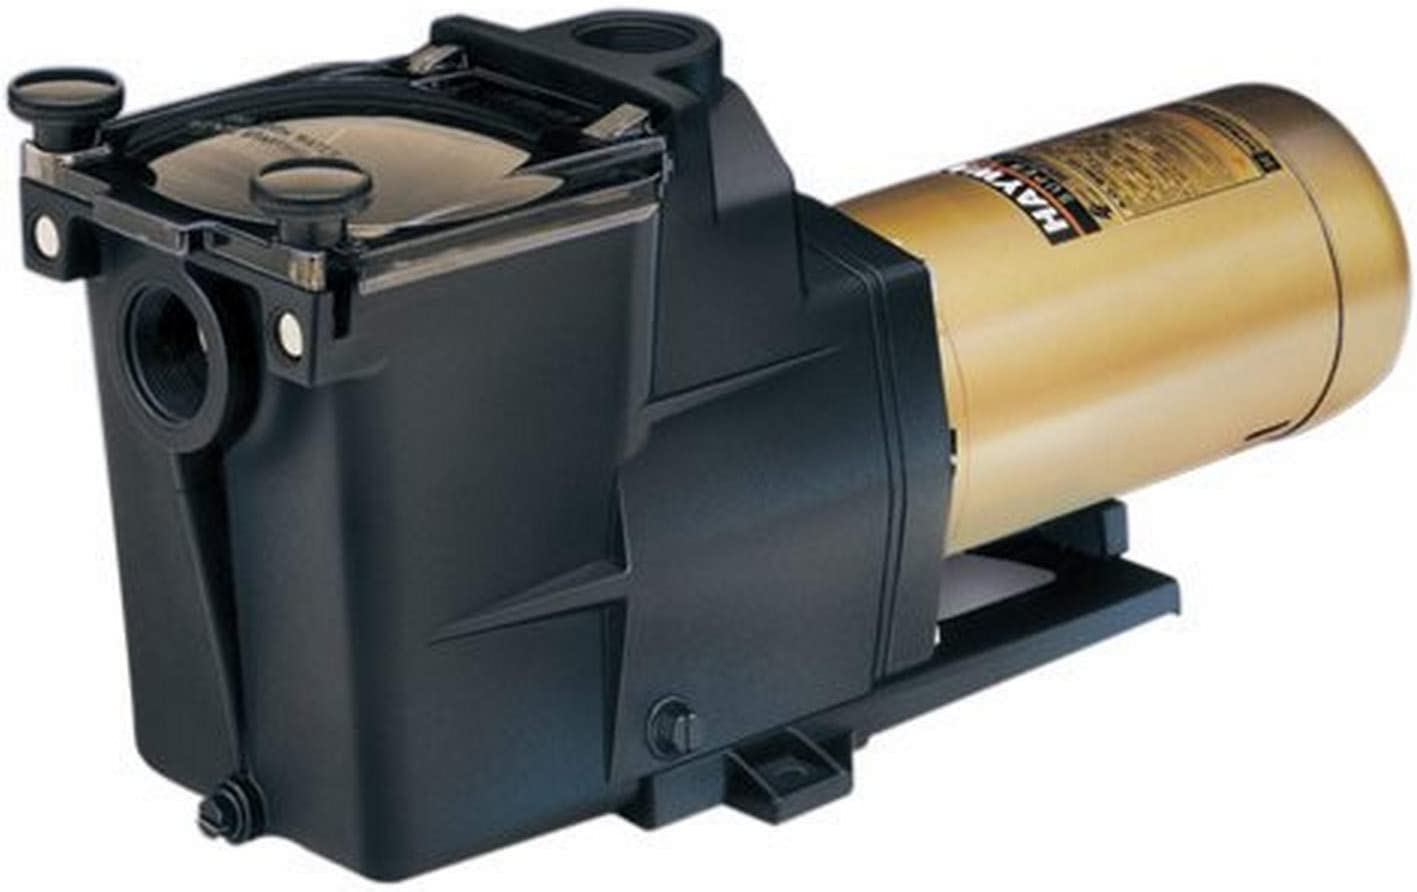 HAYWARD POOL PRODUCTS SP2605X751 0.75 HP 50-Cycle Pump for Pools, 230-volt